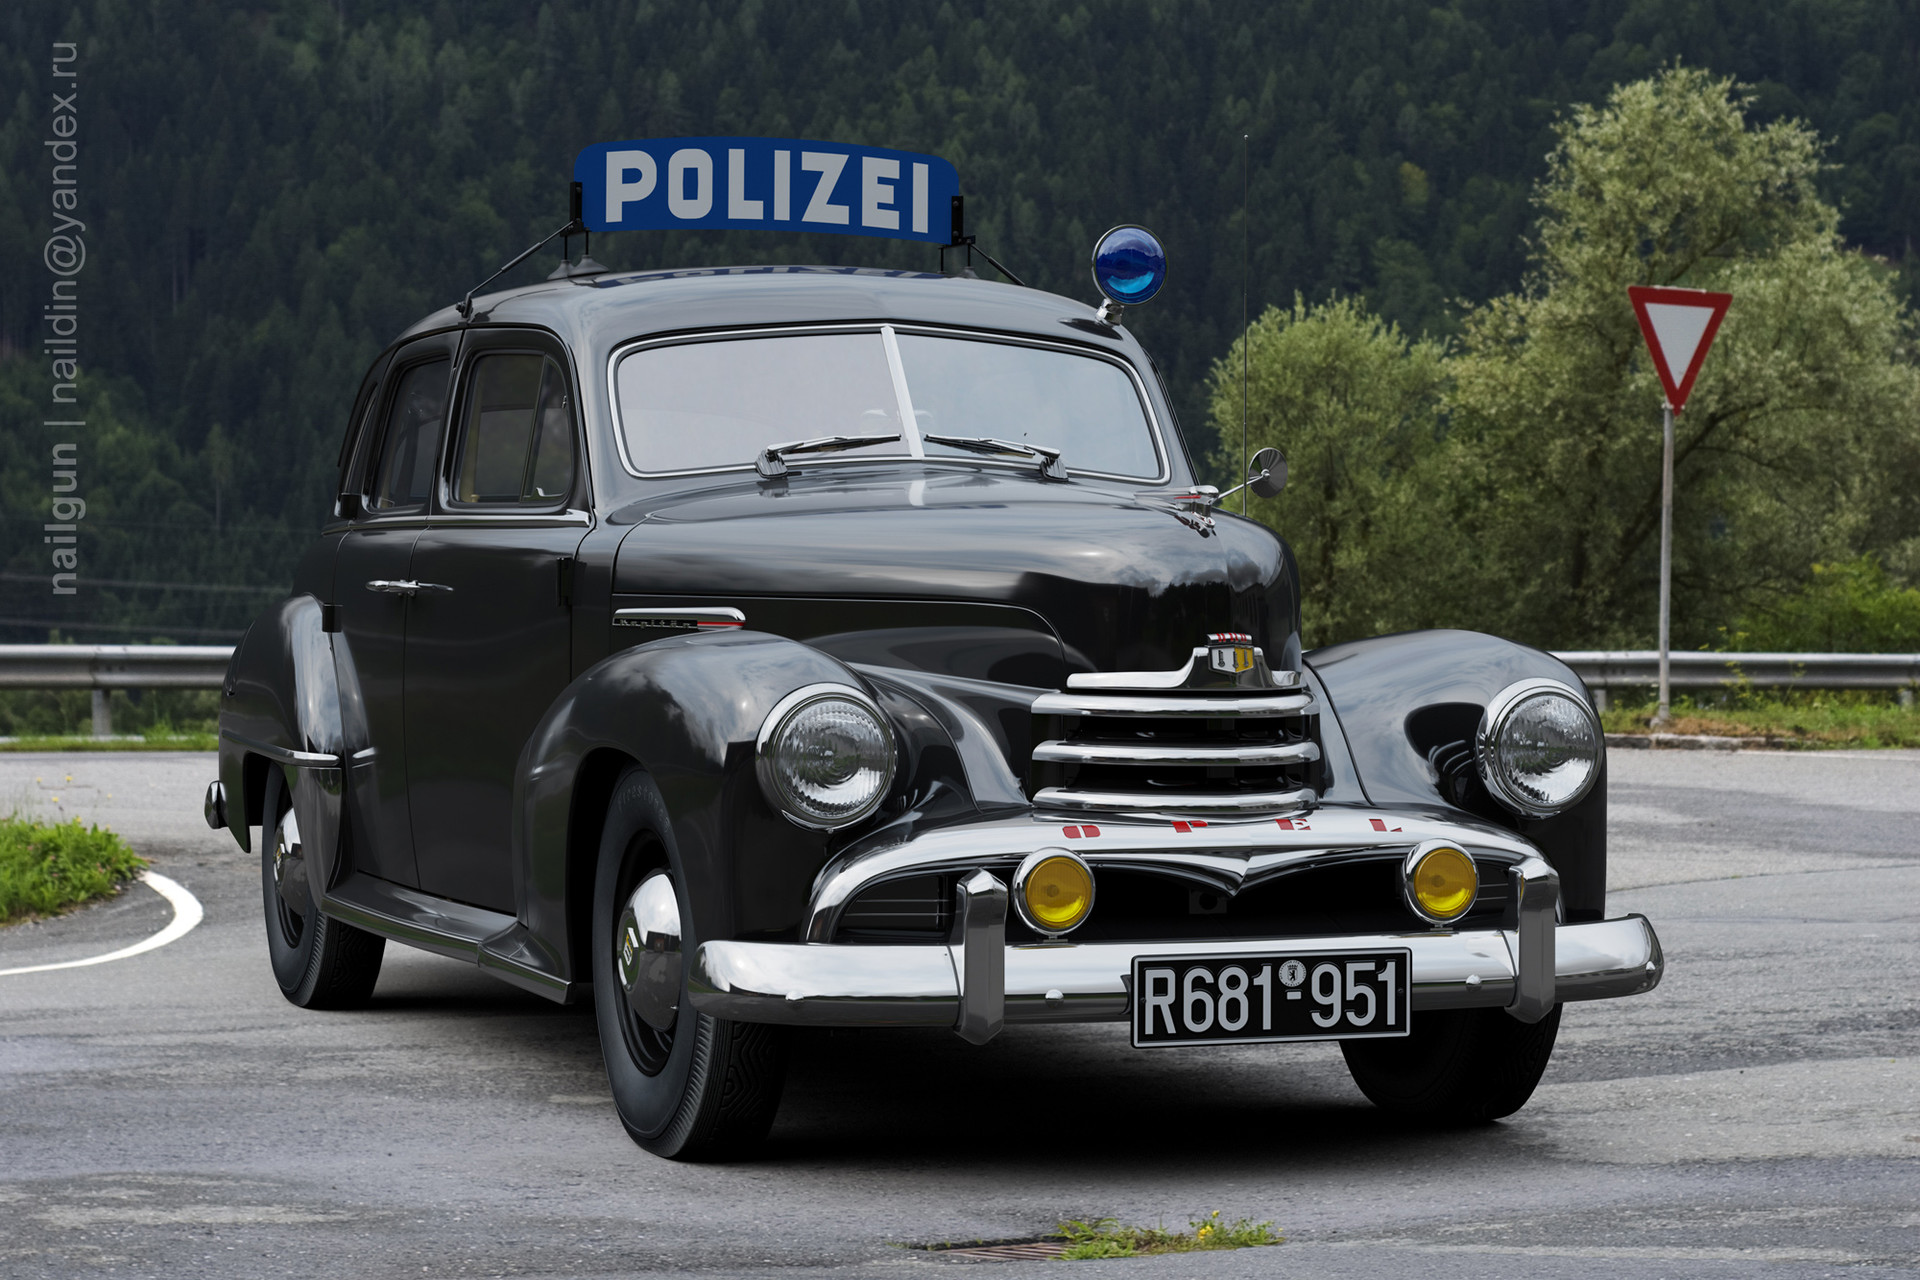 Police West Germany